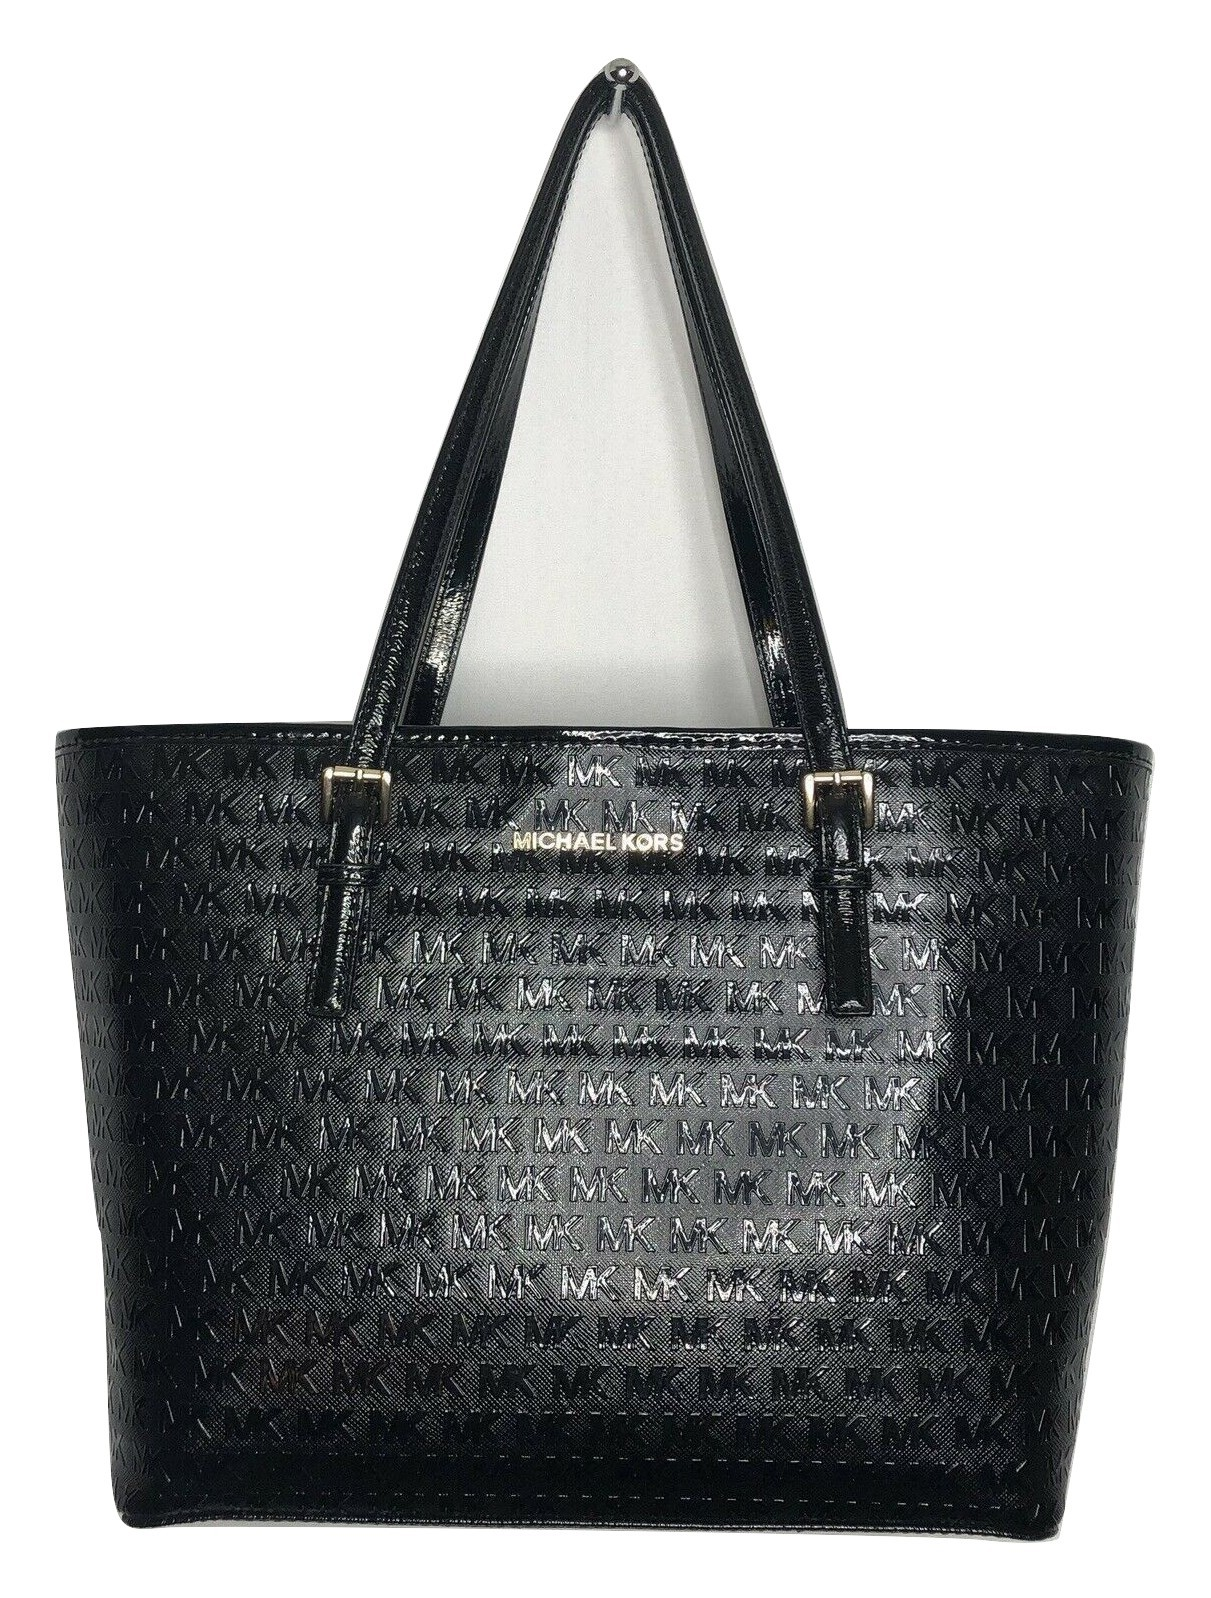 249611521724 MICHAEL KORS Jet Set Tote Bag Signature Patent Leather Med Carryall Black   248 -  159.64